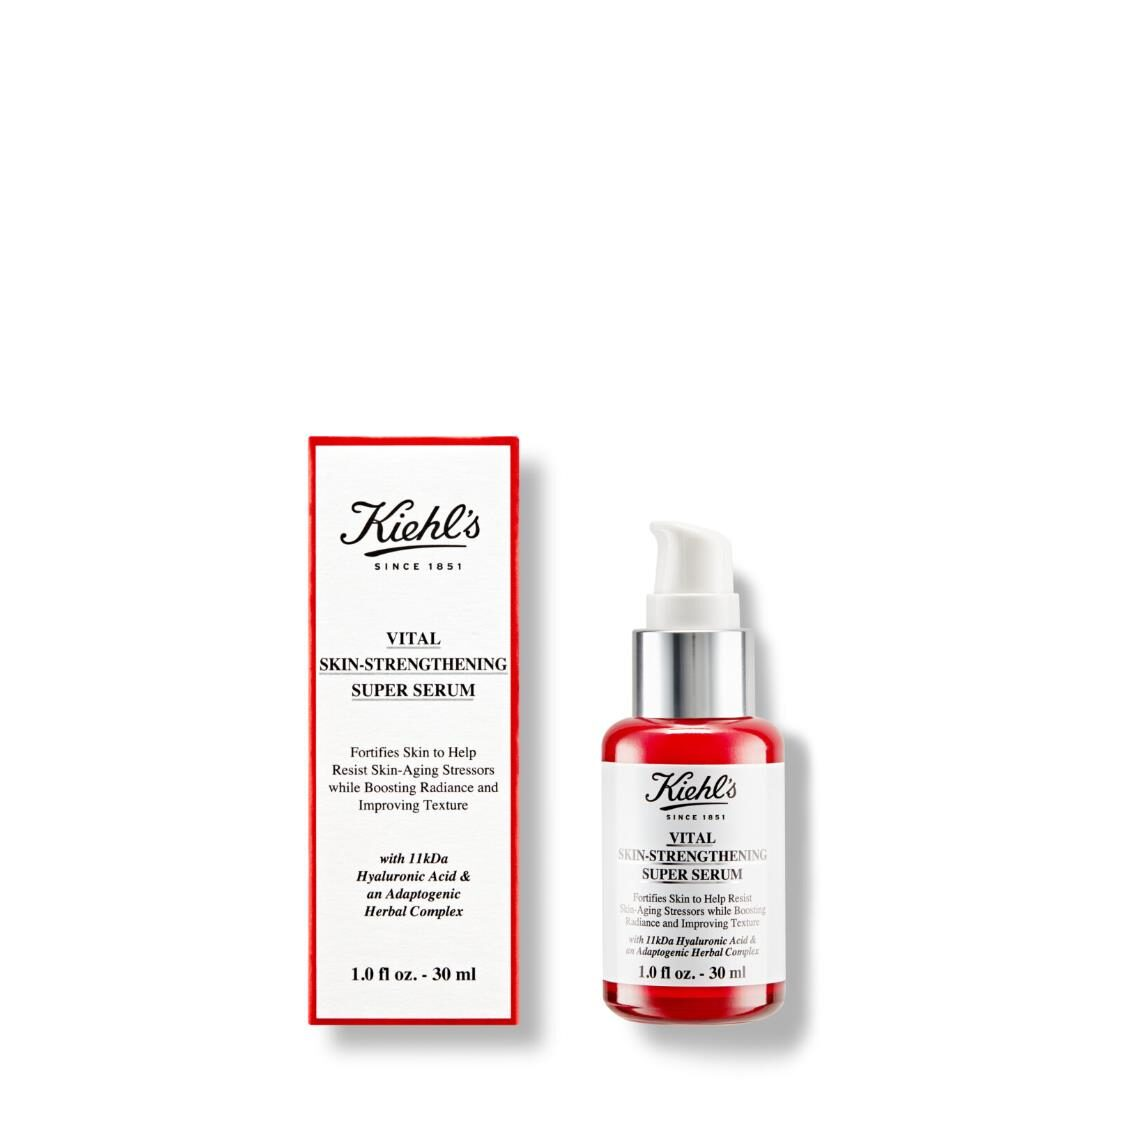 Kiehls Vital Skin-Strengthening Super Serum 30ml